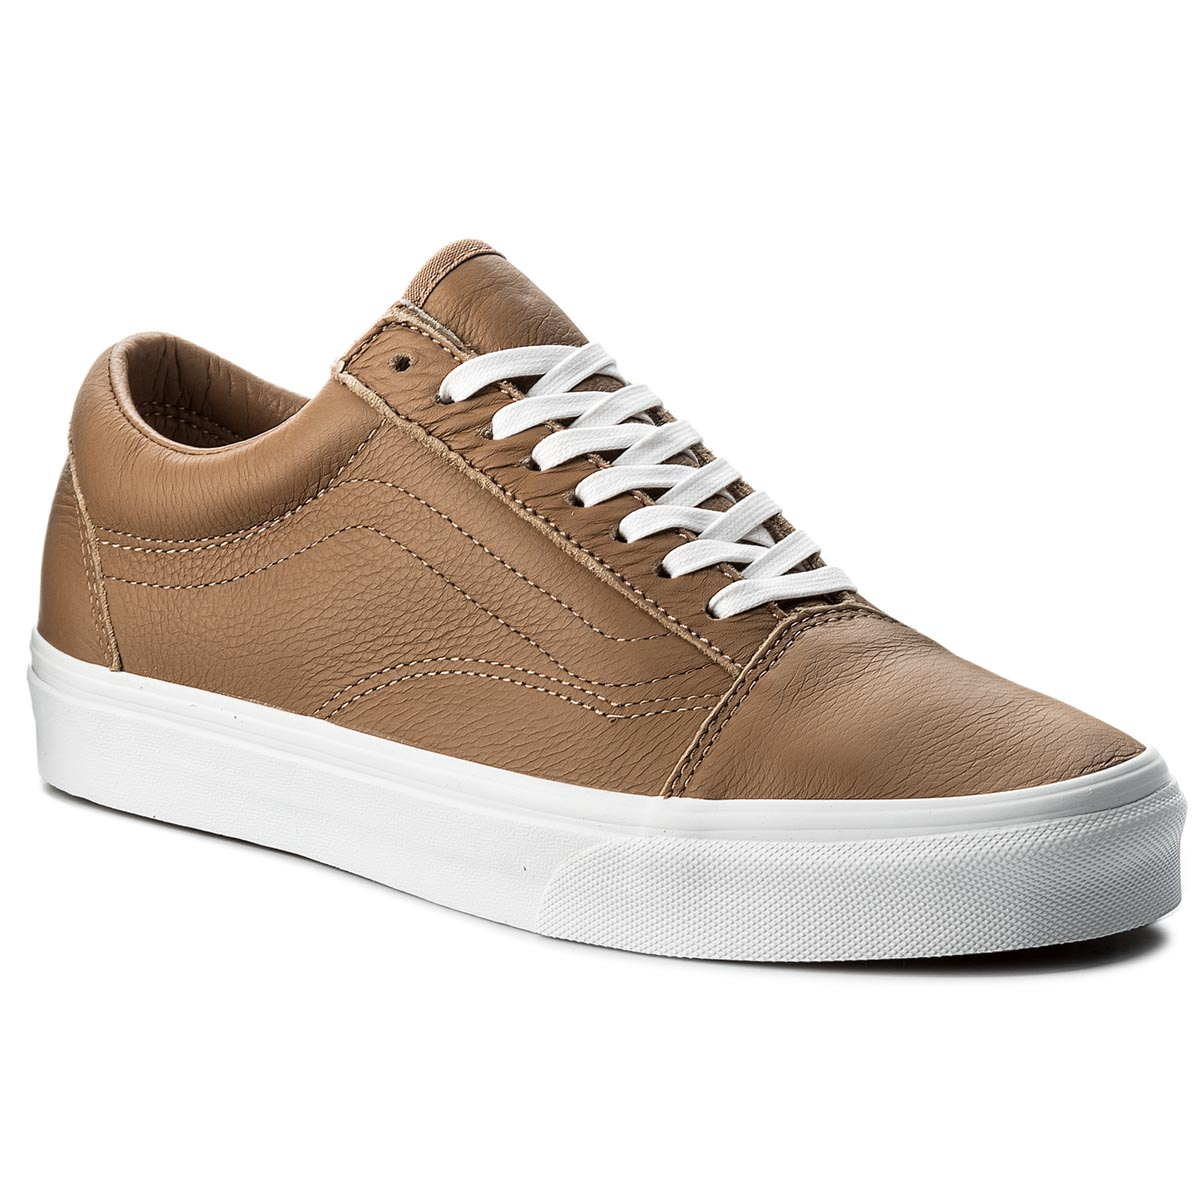 Teniși VANS - Old Skool VN0A38G1R0S (Leather) Tawny Brown/True White